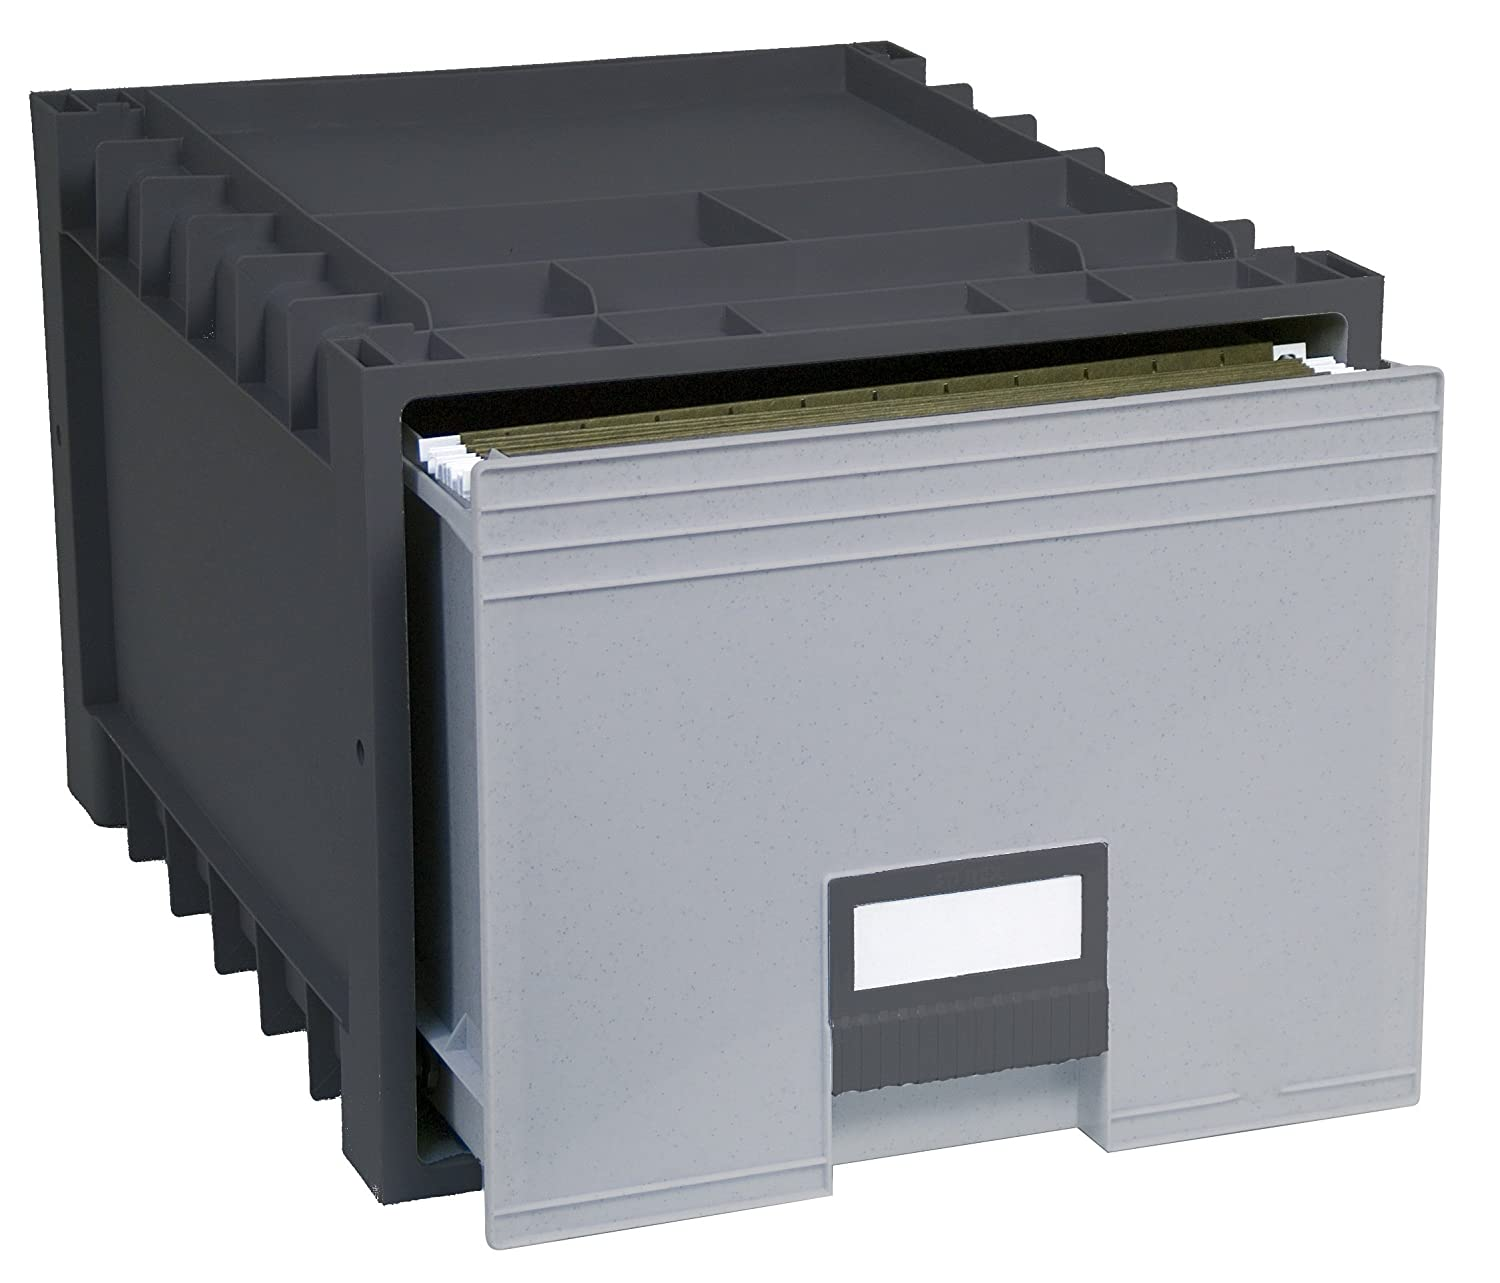 office file boxes. Amazon.com : Storex Archive Storage Box For Letter Size Hanging Files, 18-Inch Depth, Black/Grey (61179U01C) File Drawer Office Products Boxes R